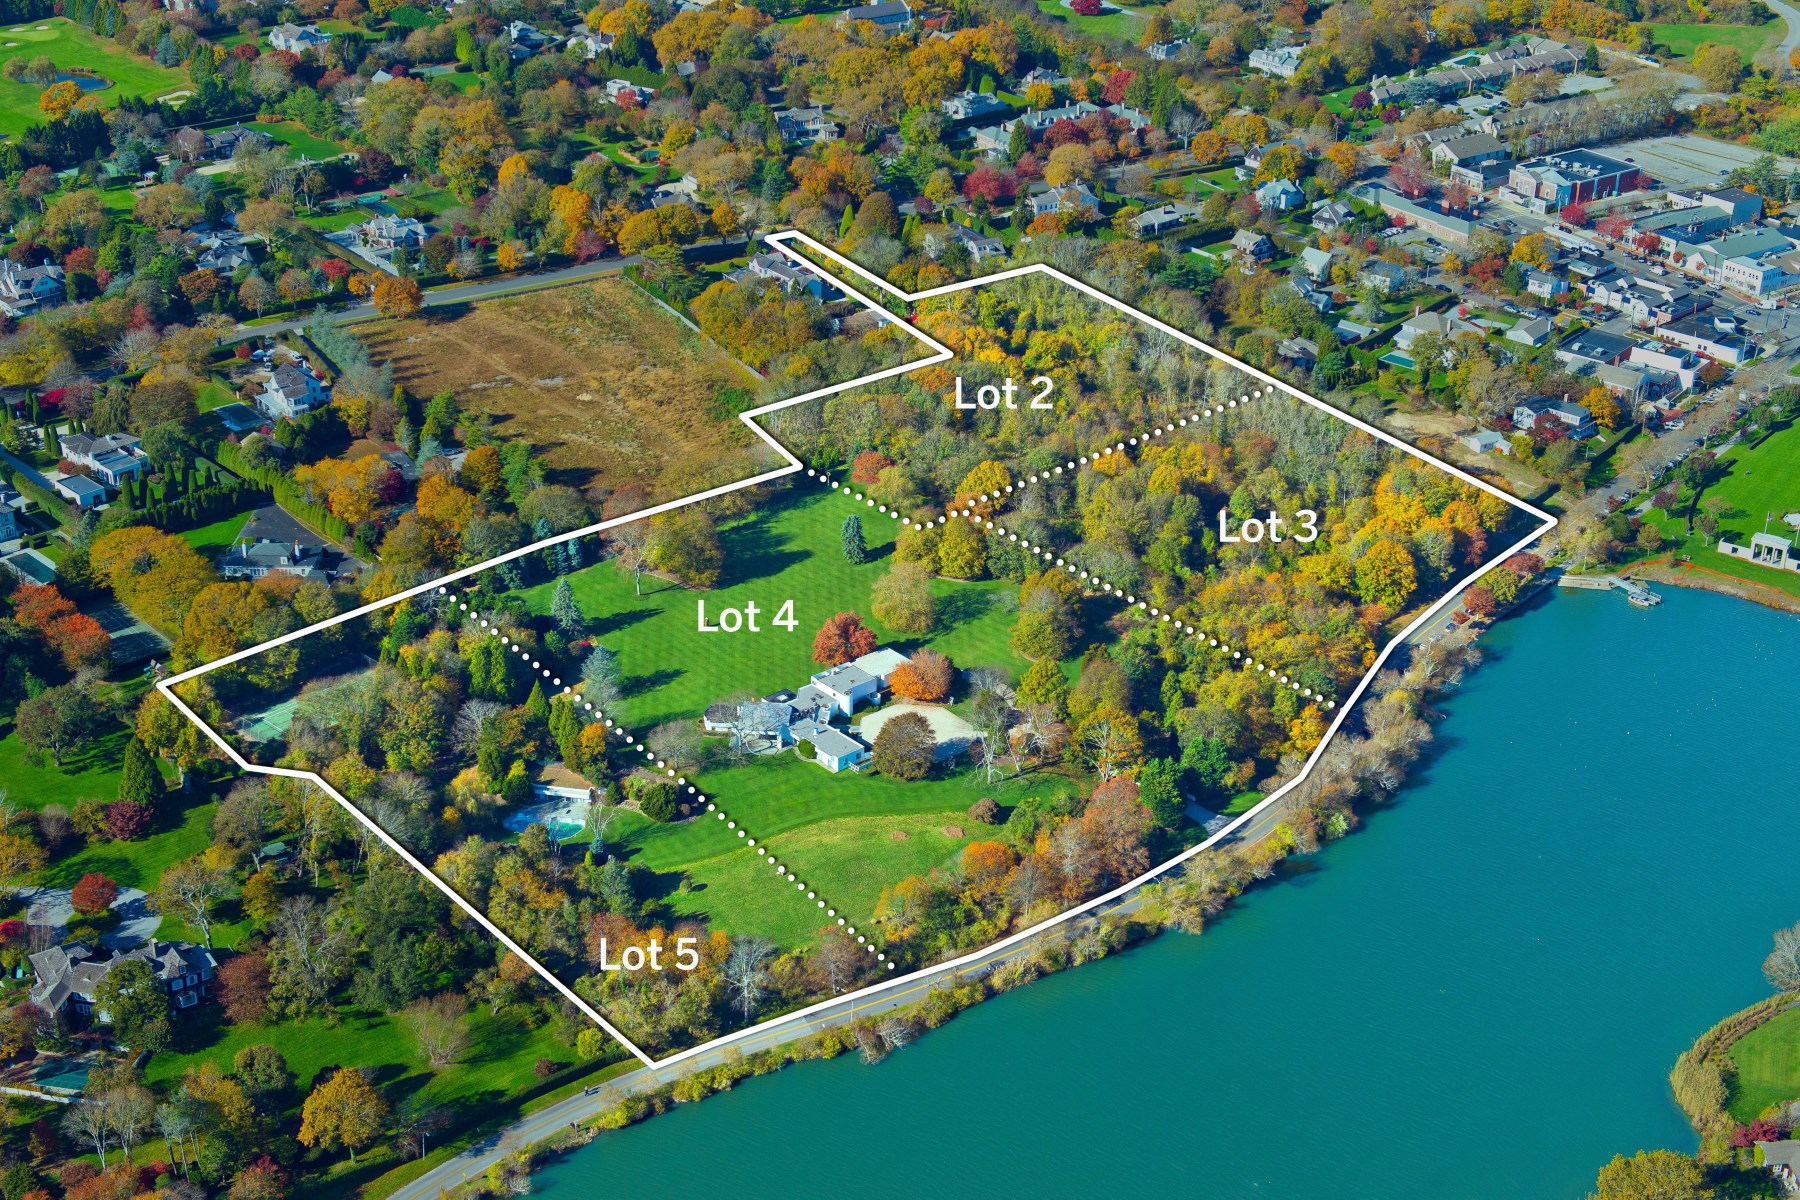 Moradia para Venda às Spectacular Waterviews on Lake Agawam 137,153 Pond Lane, Lot 4 & 5 Southampton Estate Section, Southampton, Nova York, 11968 Estados Unidos